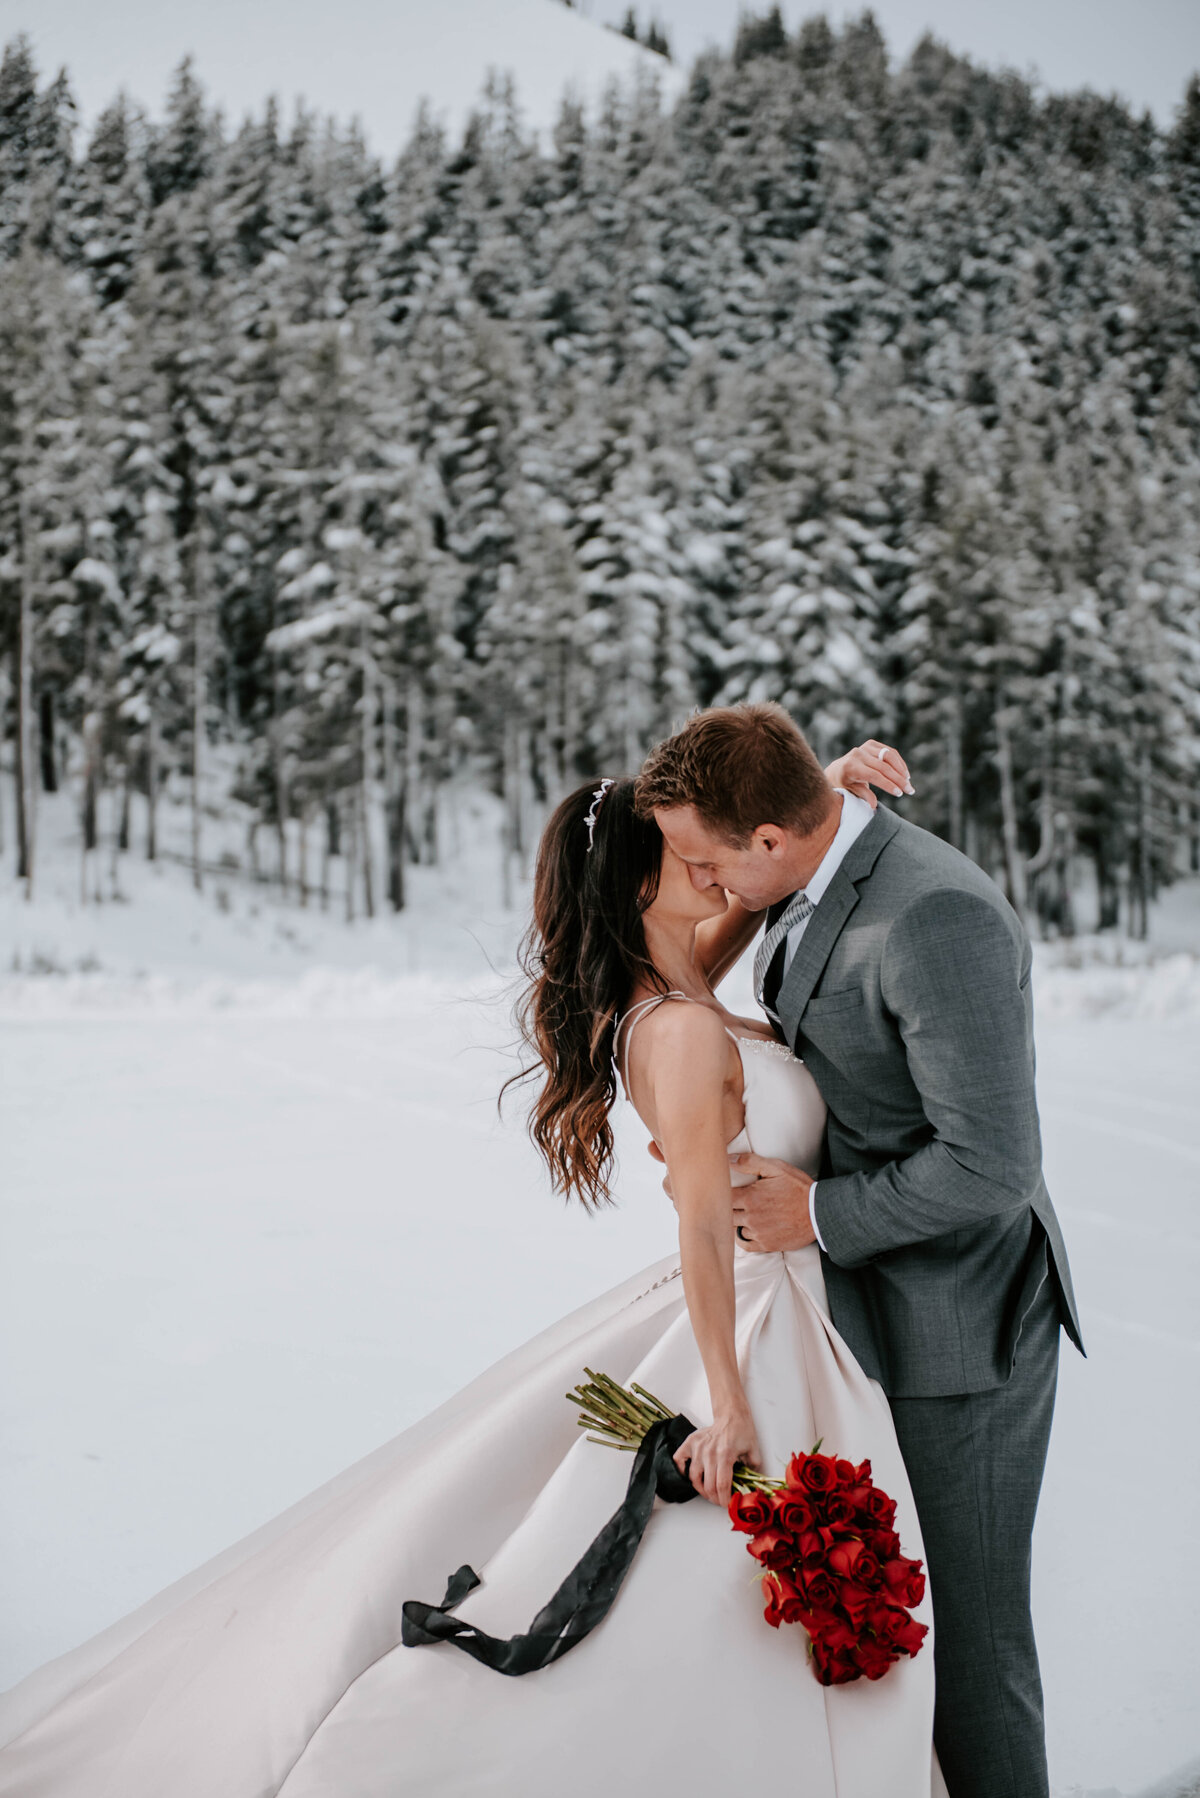 mt-bachelor-snow-winter-elopement-bend-oregon-wedding-photographer-2091